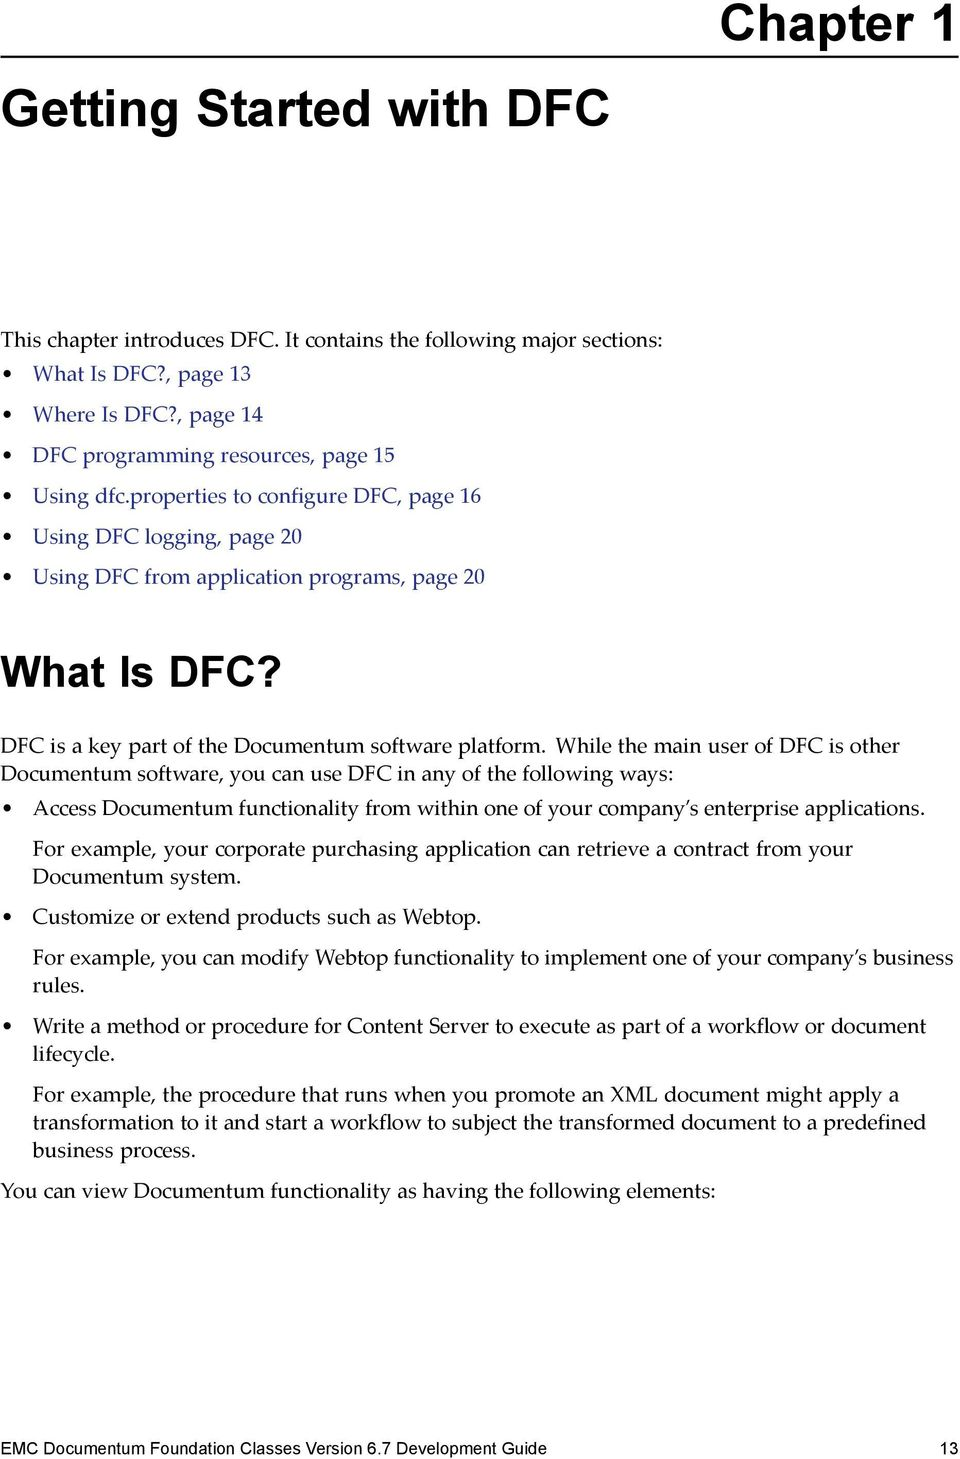 While the main user of DFC is other Documentum software, you can use DFC in any of the following ways: Access Documentum functionality from within one of your company s enterprise applications.